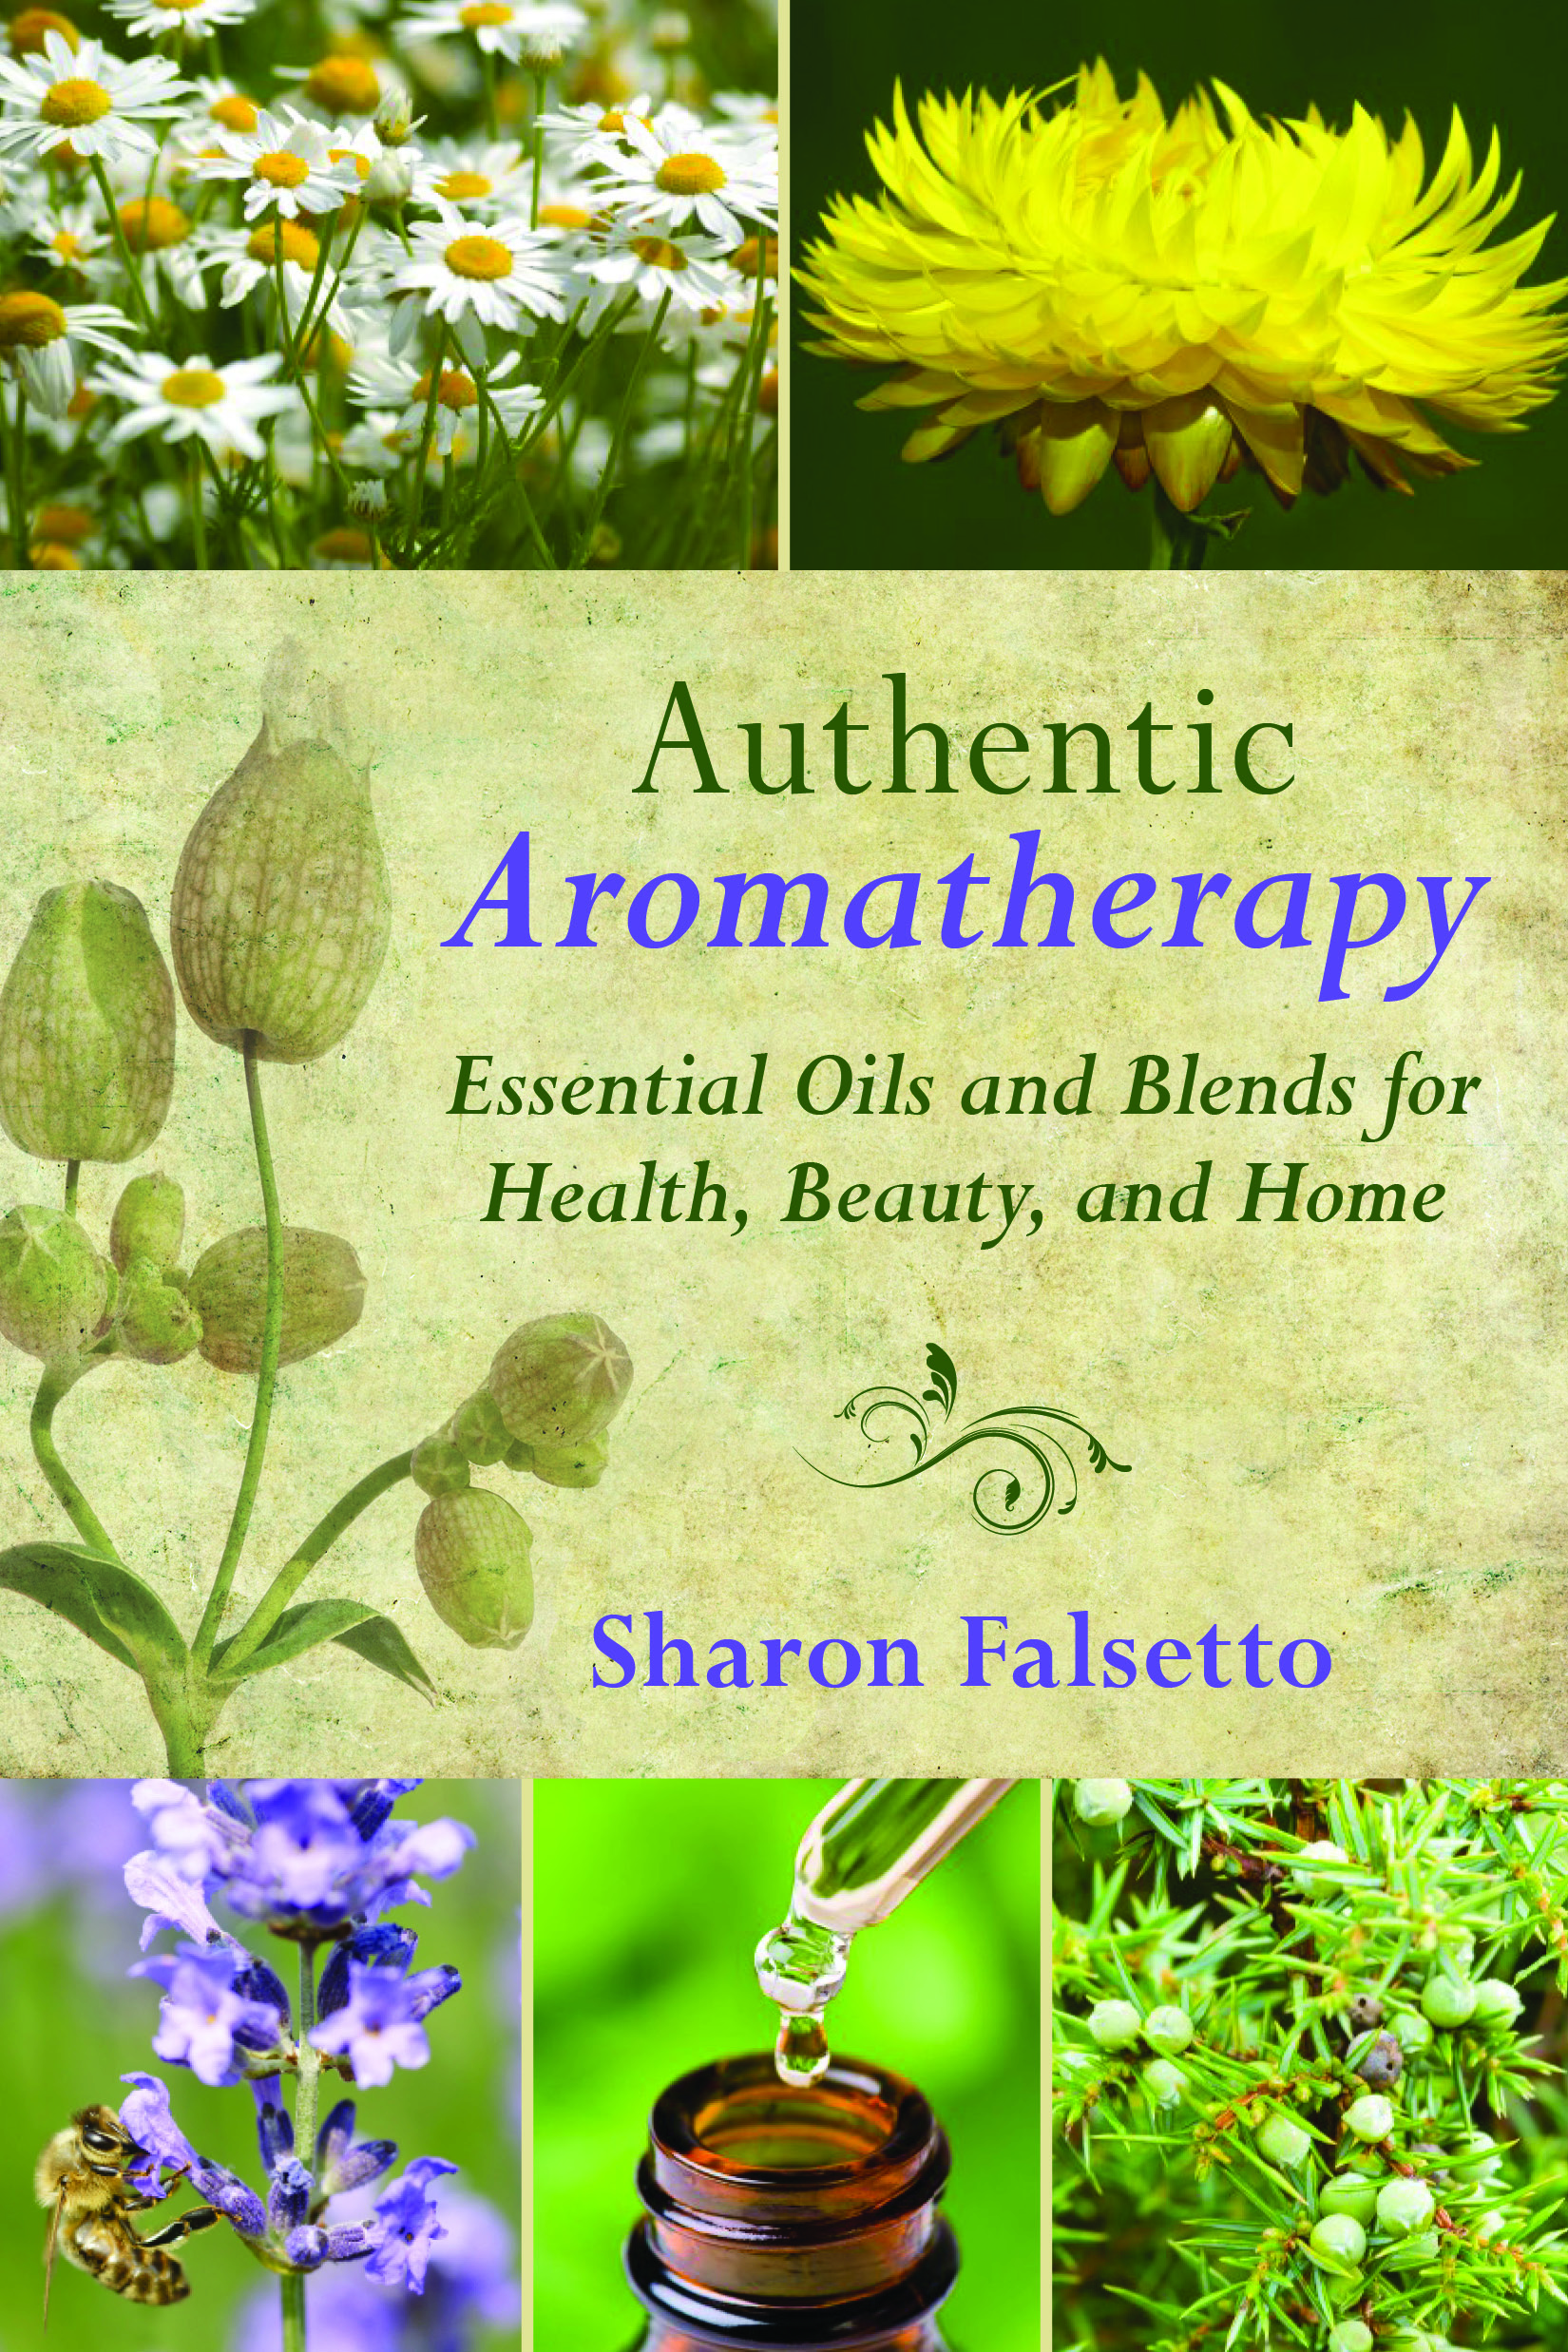 Authentic Aromatherapy